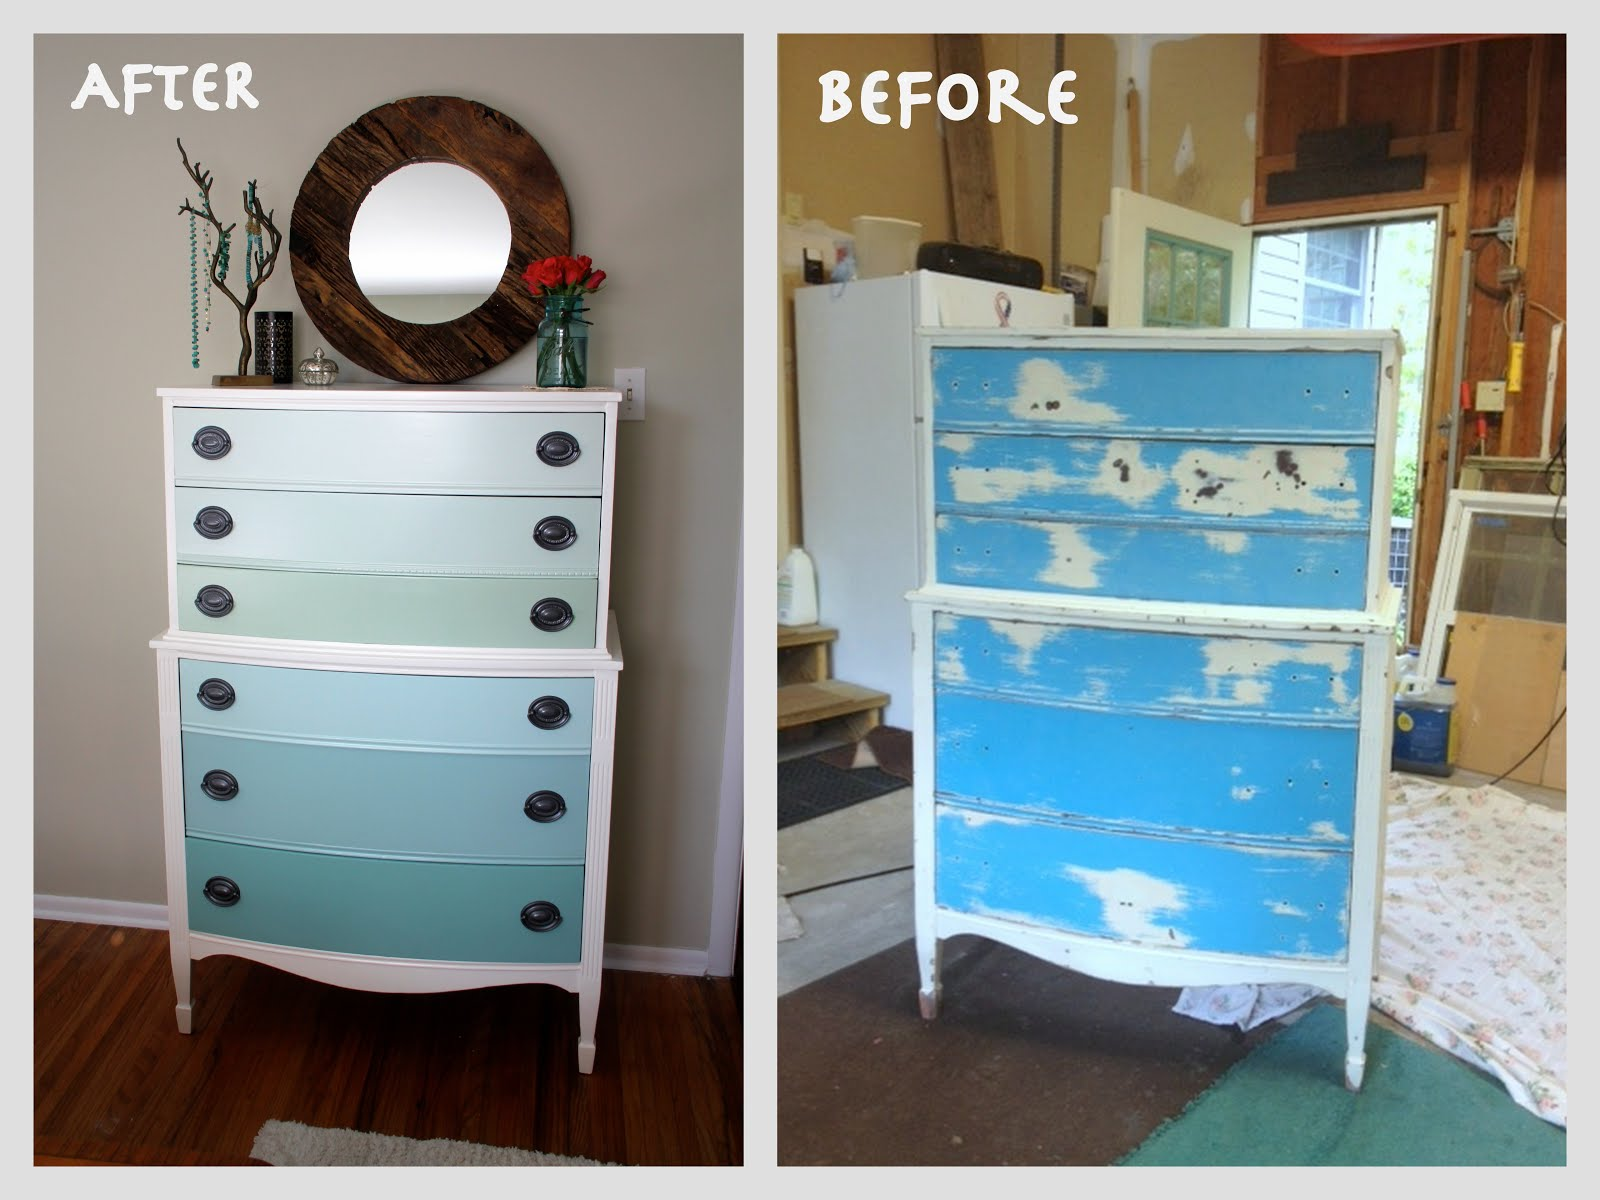 Superieur Nature Inspired Handcrafted Jewelry: OMBRE Painted Dresser Tutorial   How  To Refinish Old Furniture In 10 Easy Steps!